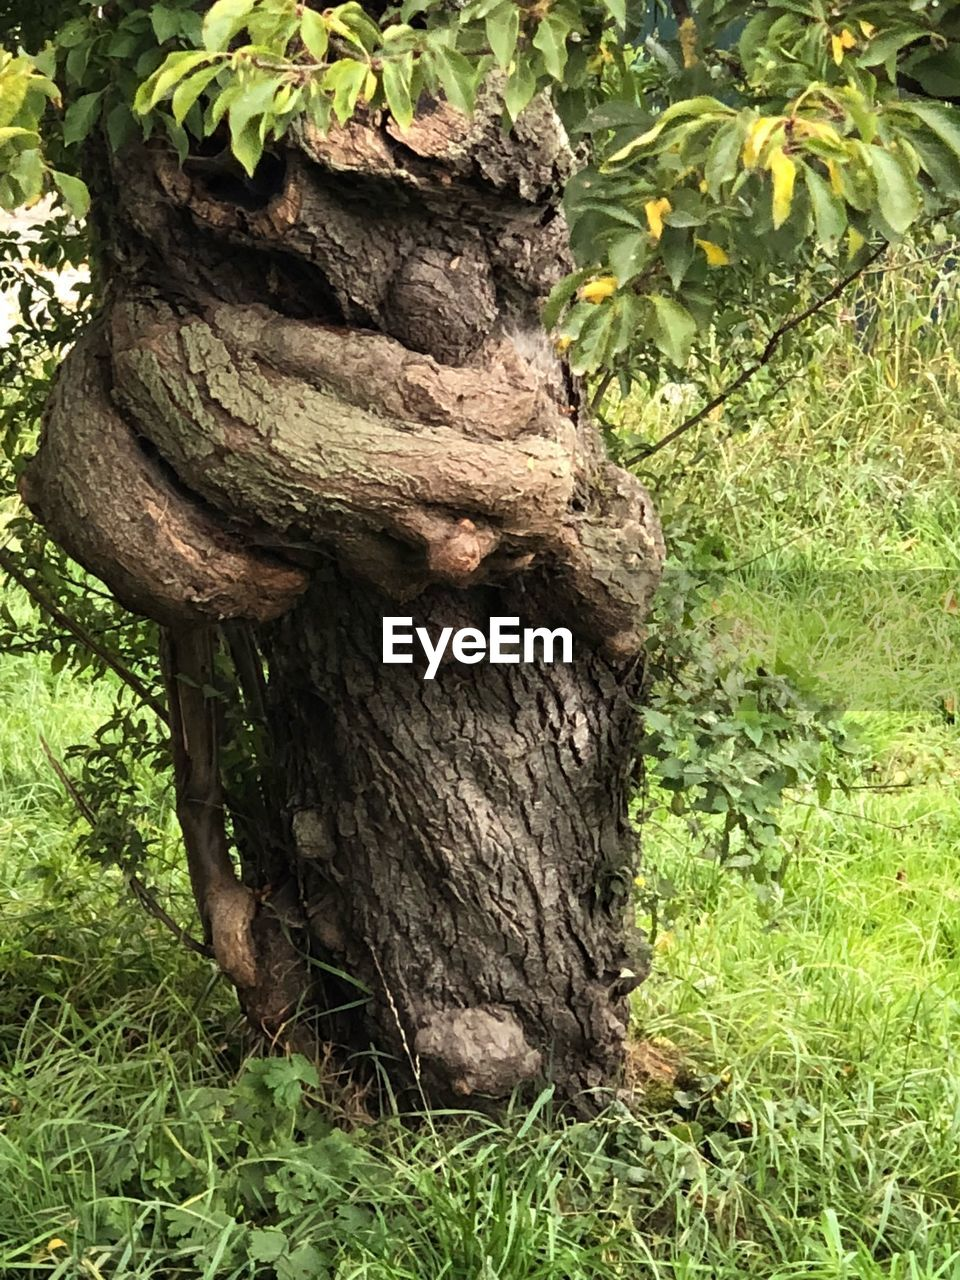 plant, tree, growth, tree trunk, day, trunk, nature, land, no people, green color, outdoors, grass, bark, close-up, tranquility, field, plant part, forest, textured, beauty in nature